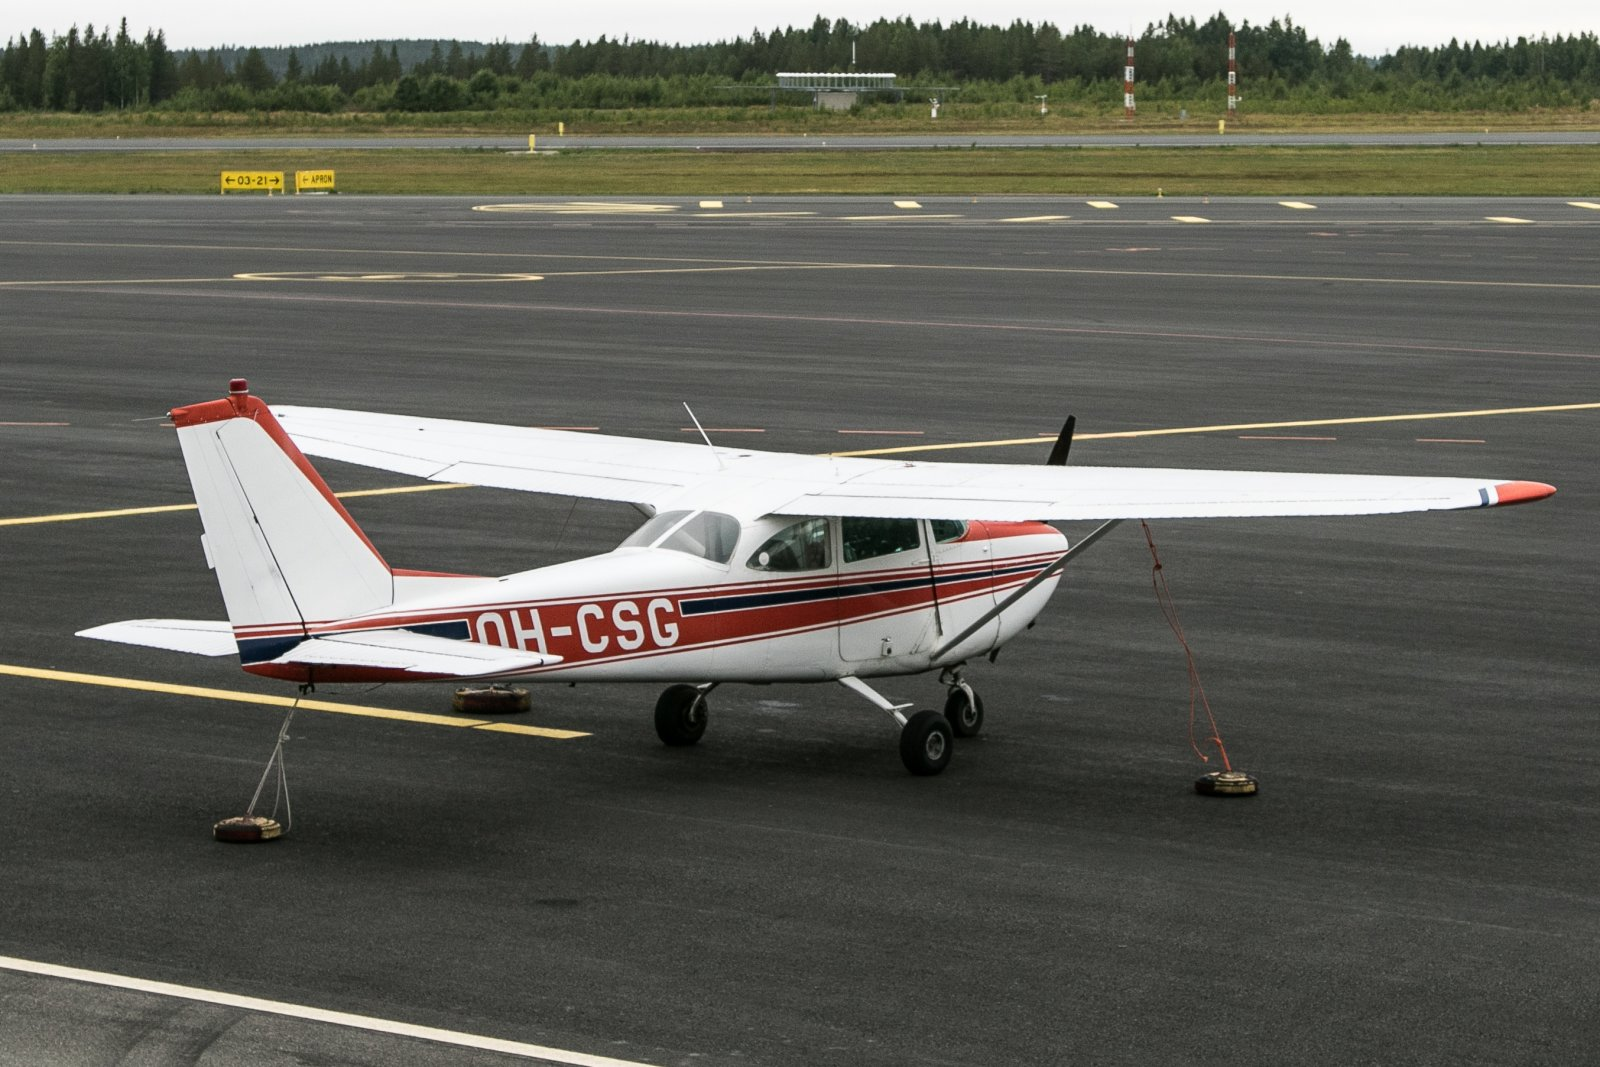 OH-CSG, Cessna 172 F